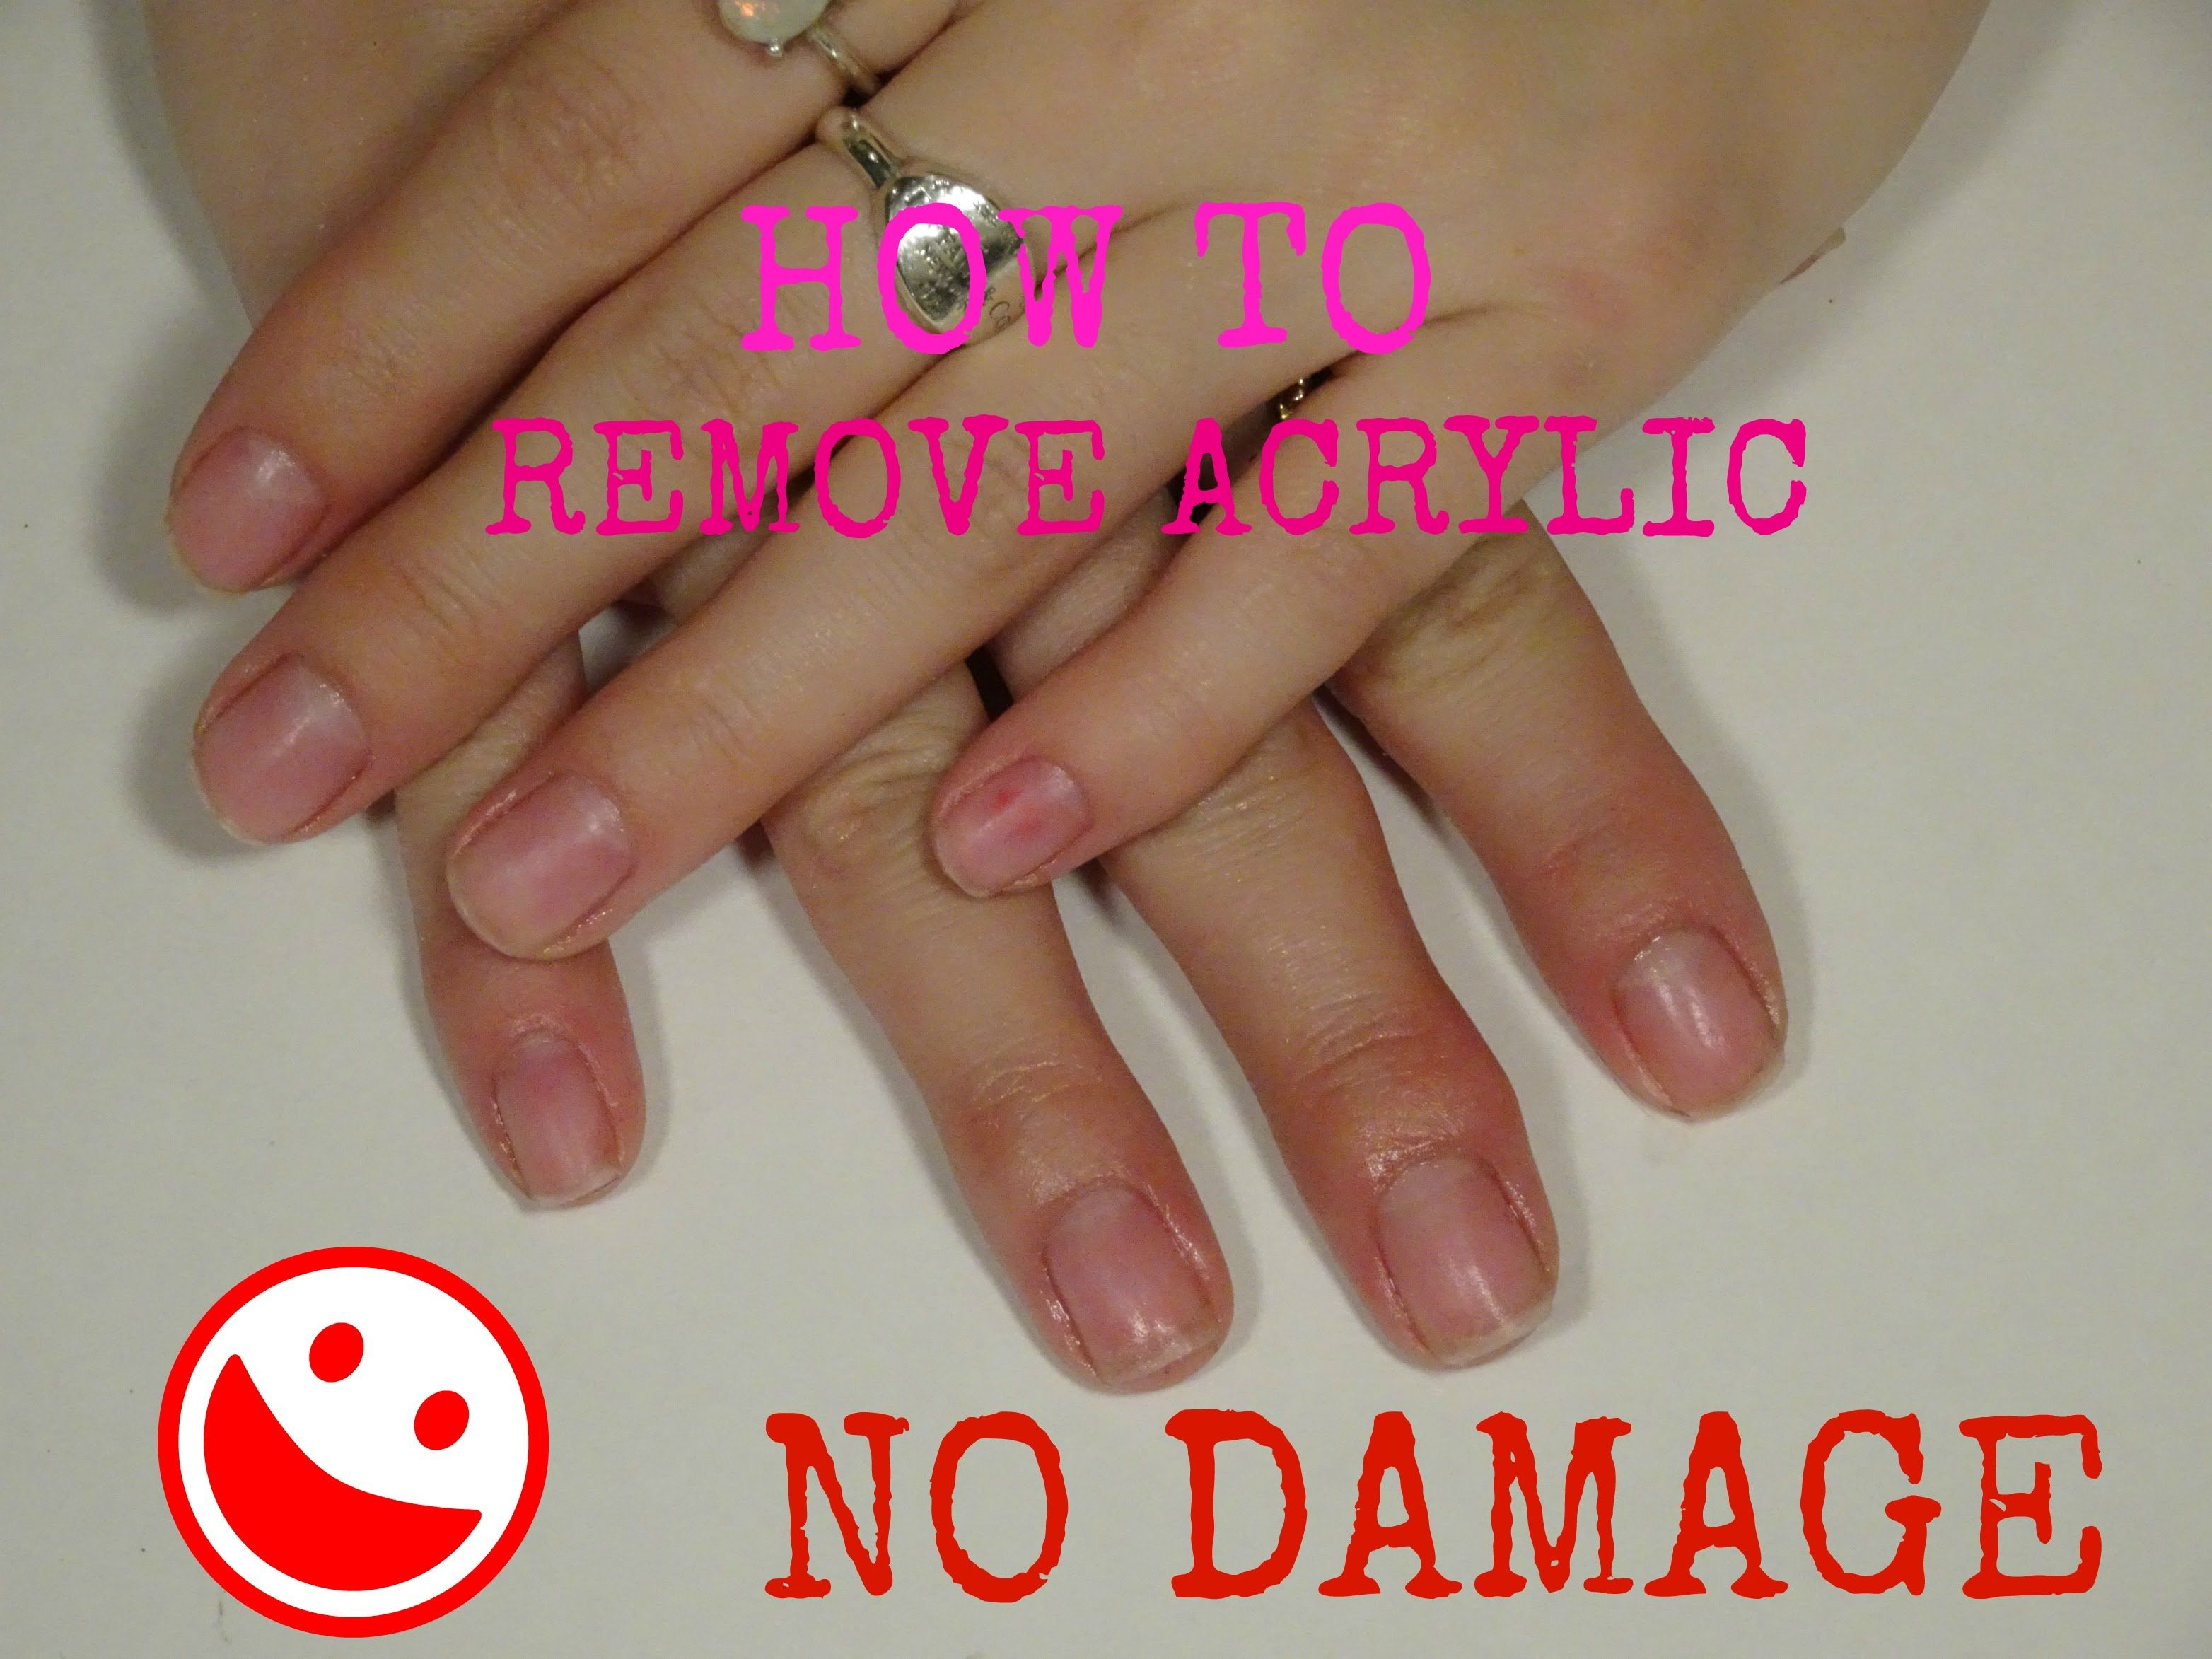 How To Remove Acrylic Nails With No Damage Remove Acrylic Nails Take Off Acrylic Nails Soak Off Acrylic Nails